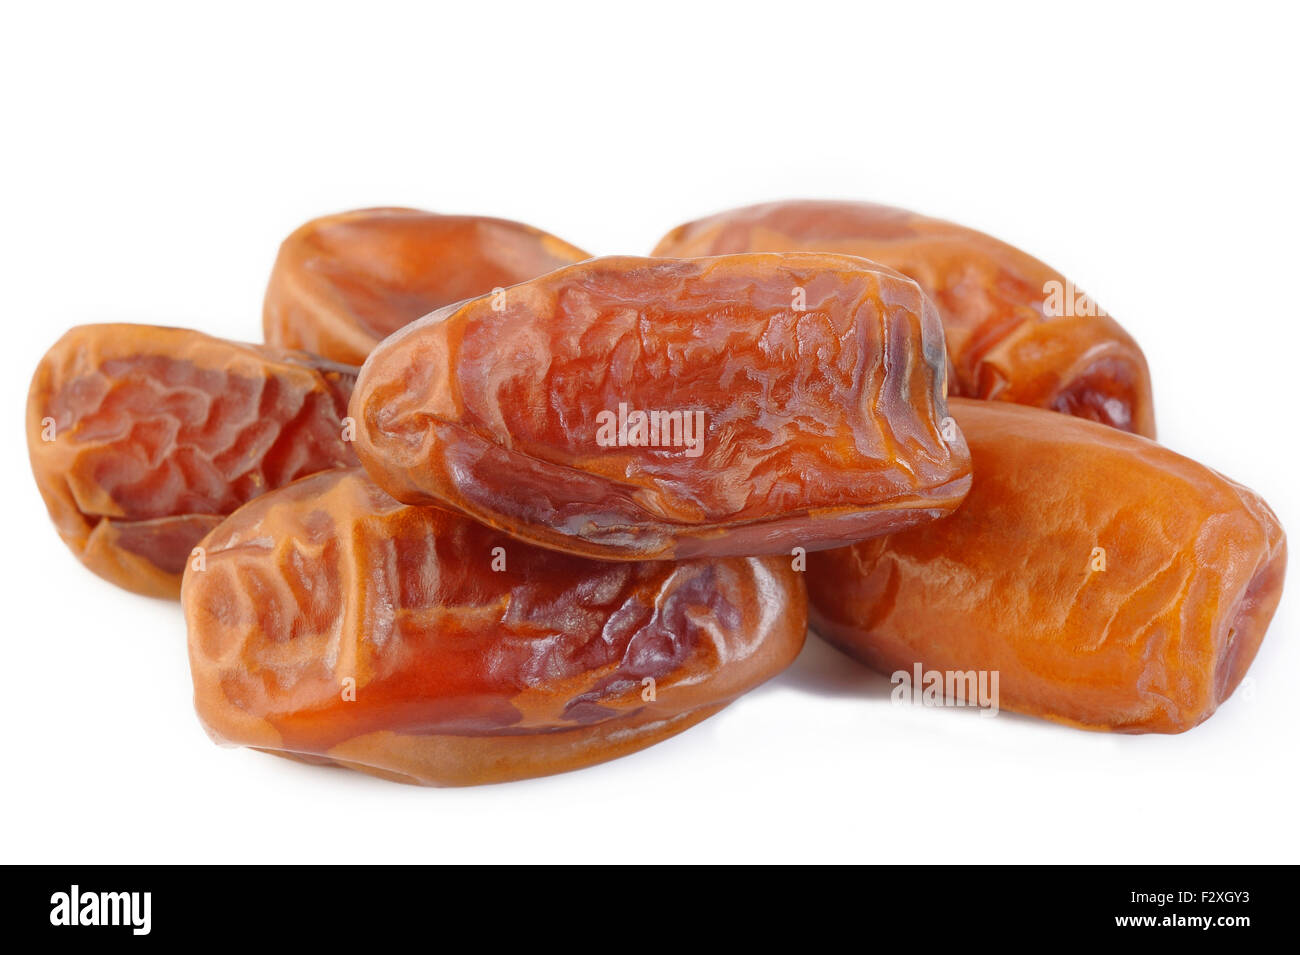 Dried dates isolated on white background - Stock Image